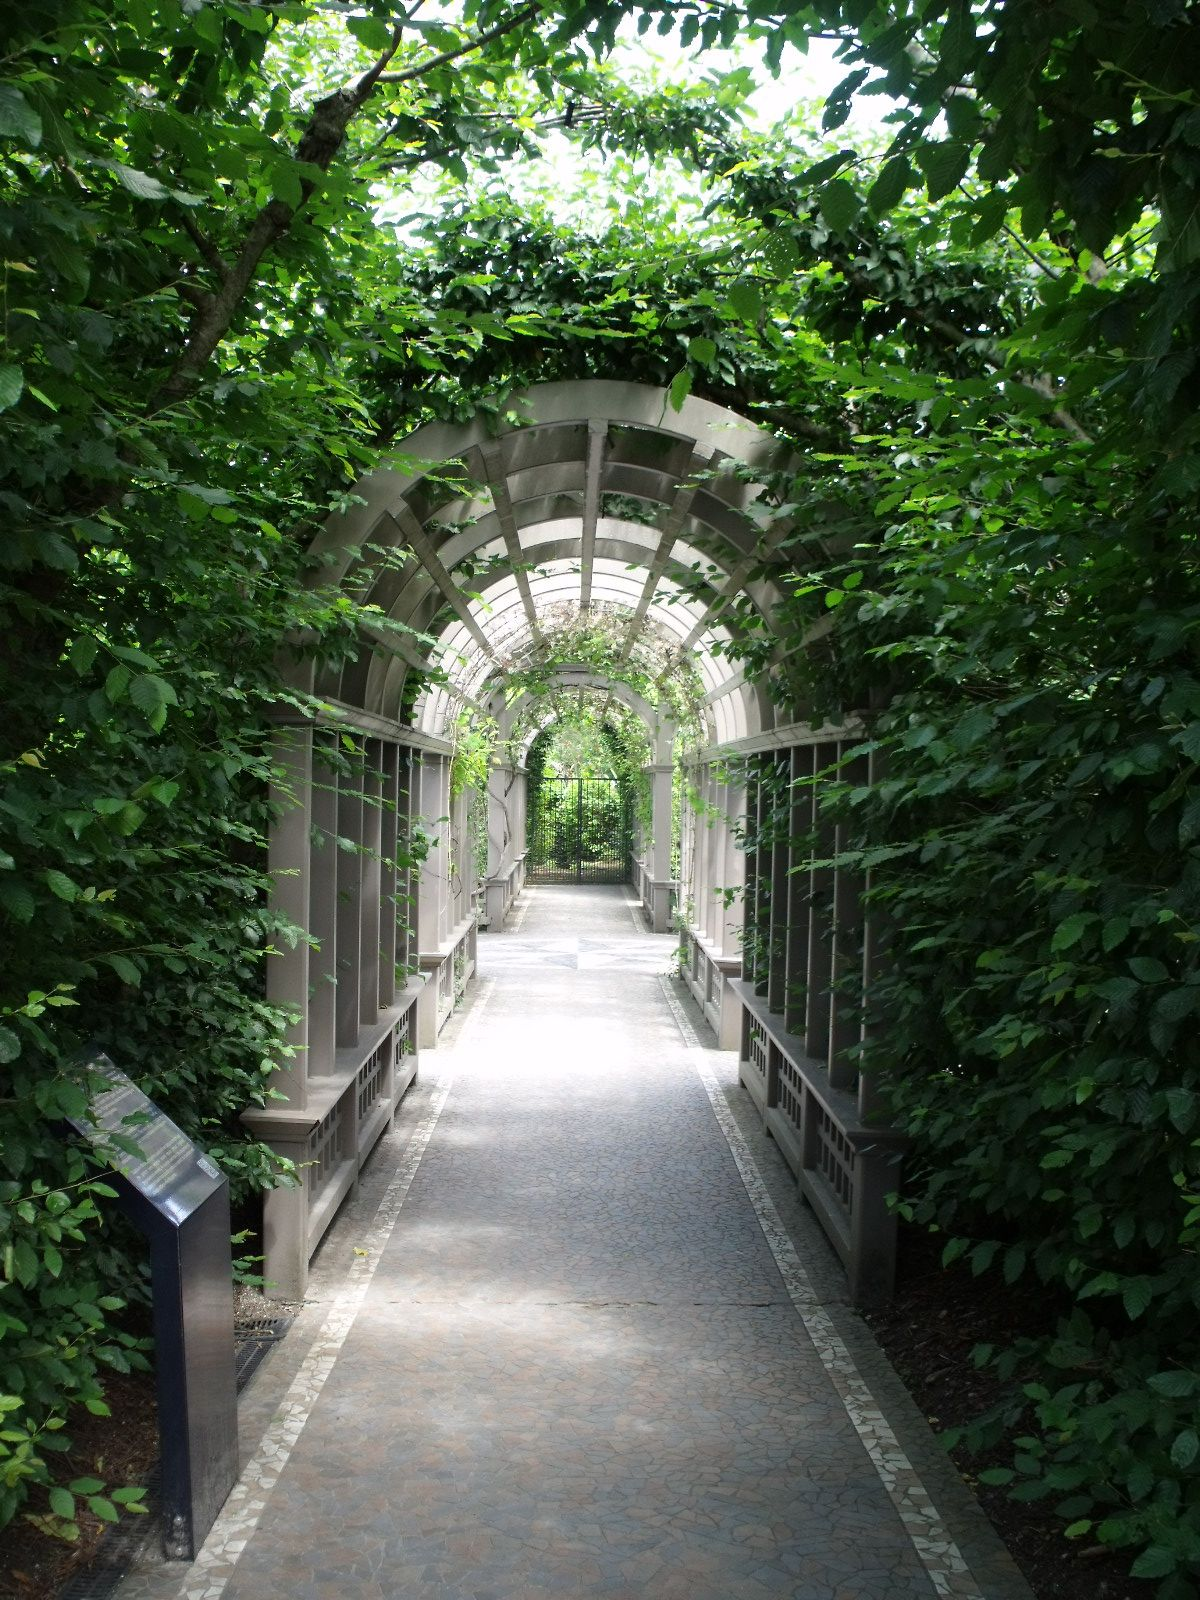 Charmant Covered Arched Walkway As You Enter The Italian Gardens